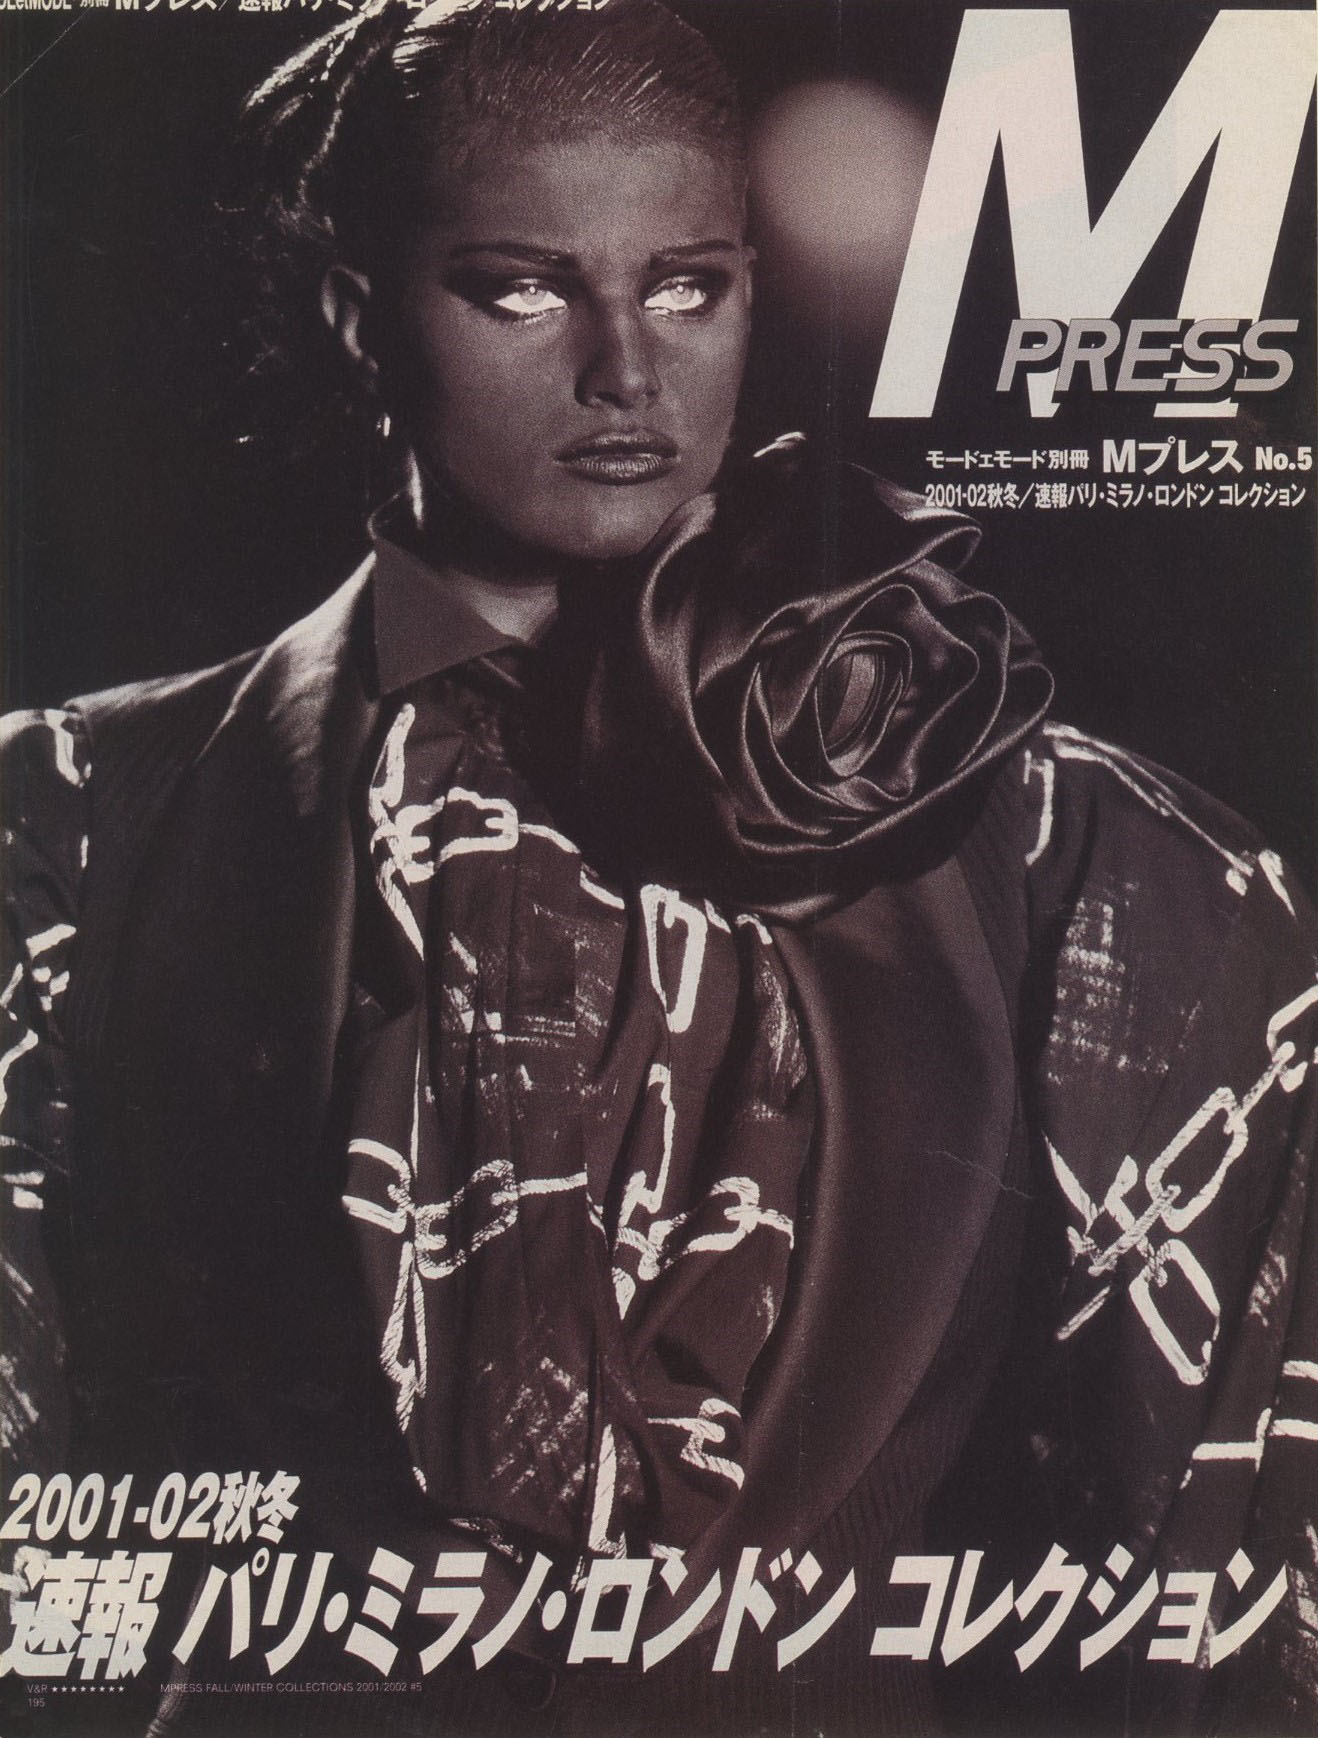 viktor and rolf mpress fall winter collection 2001 2002 no5